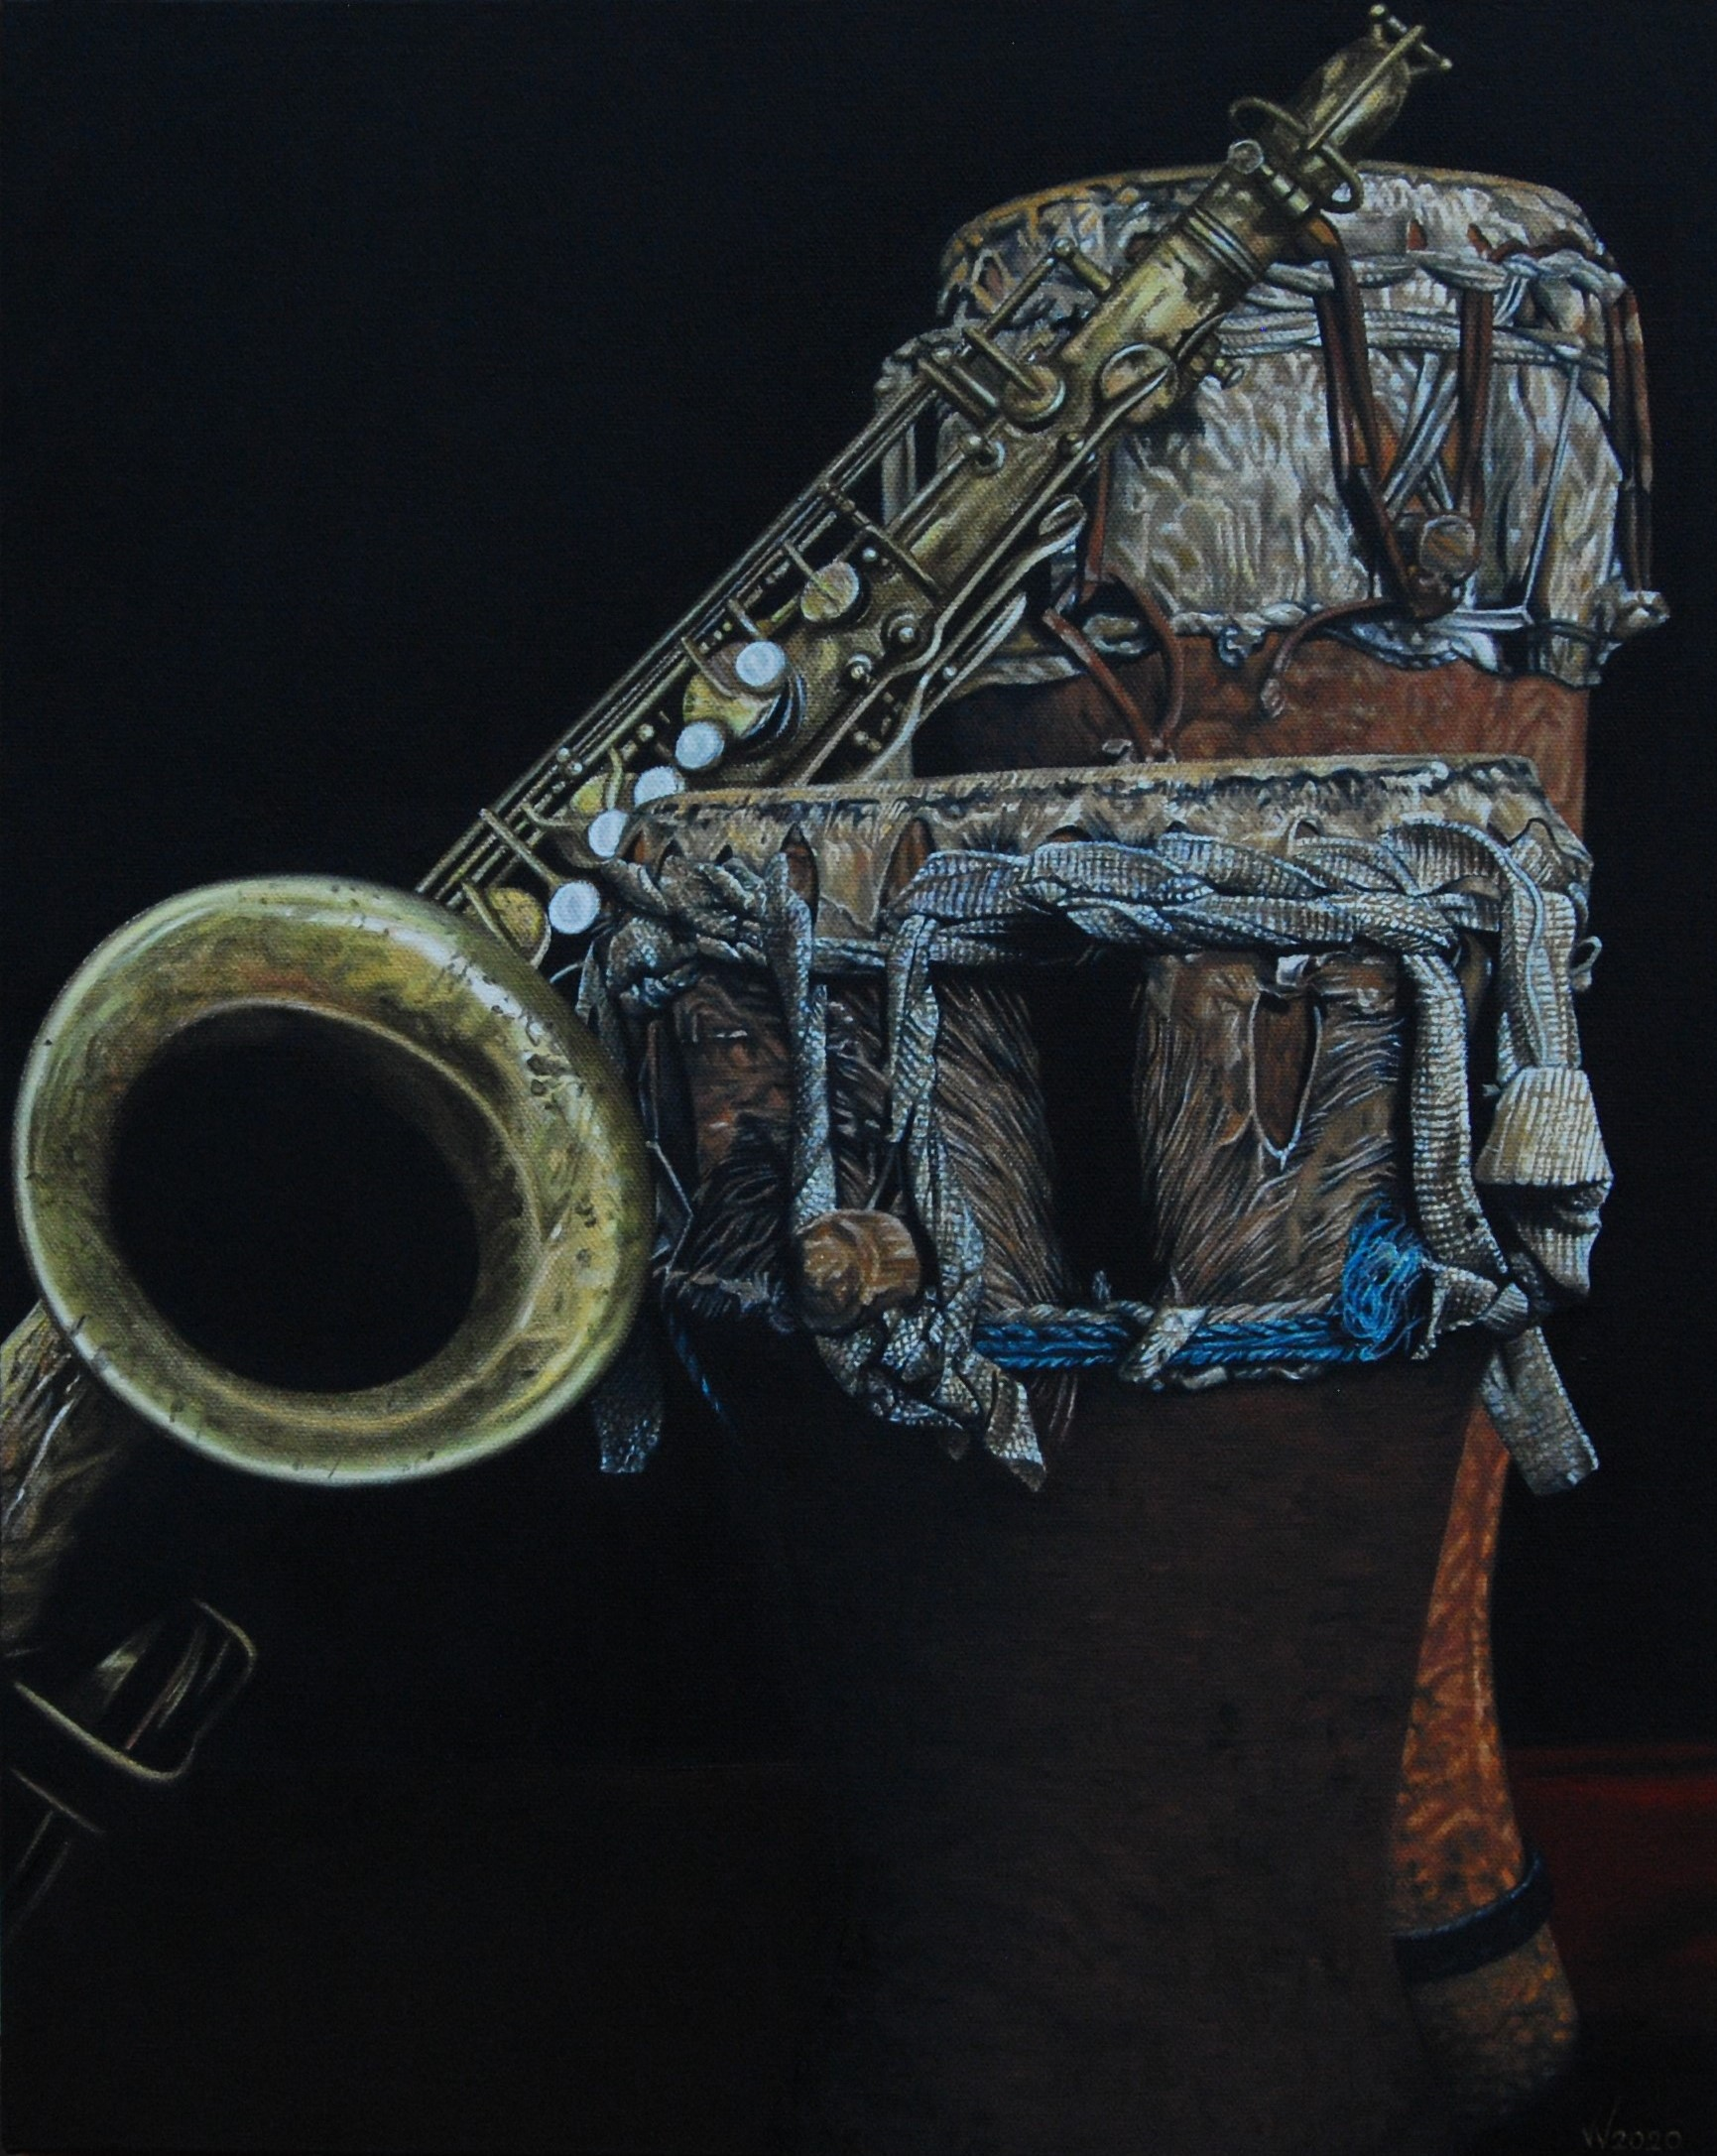 The magic of sound (tenor saxophone and African drums)